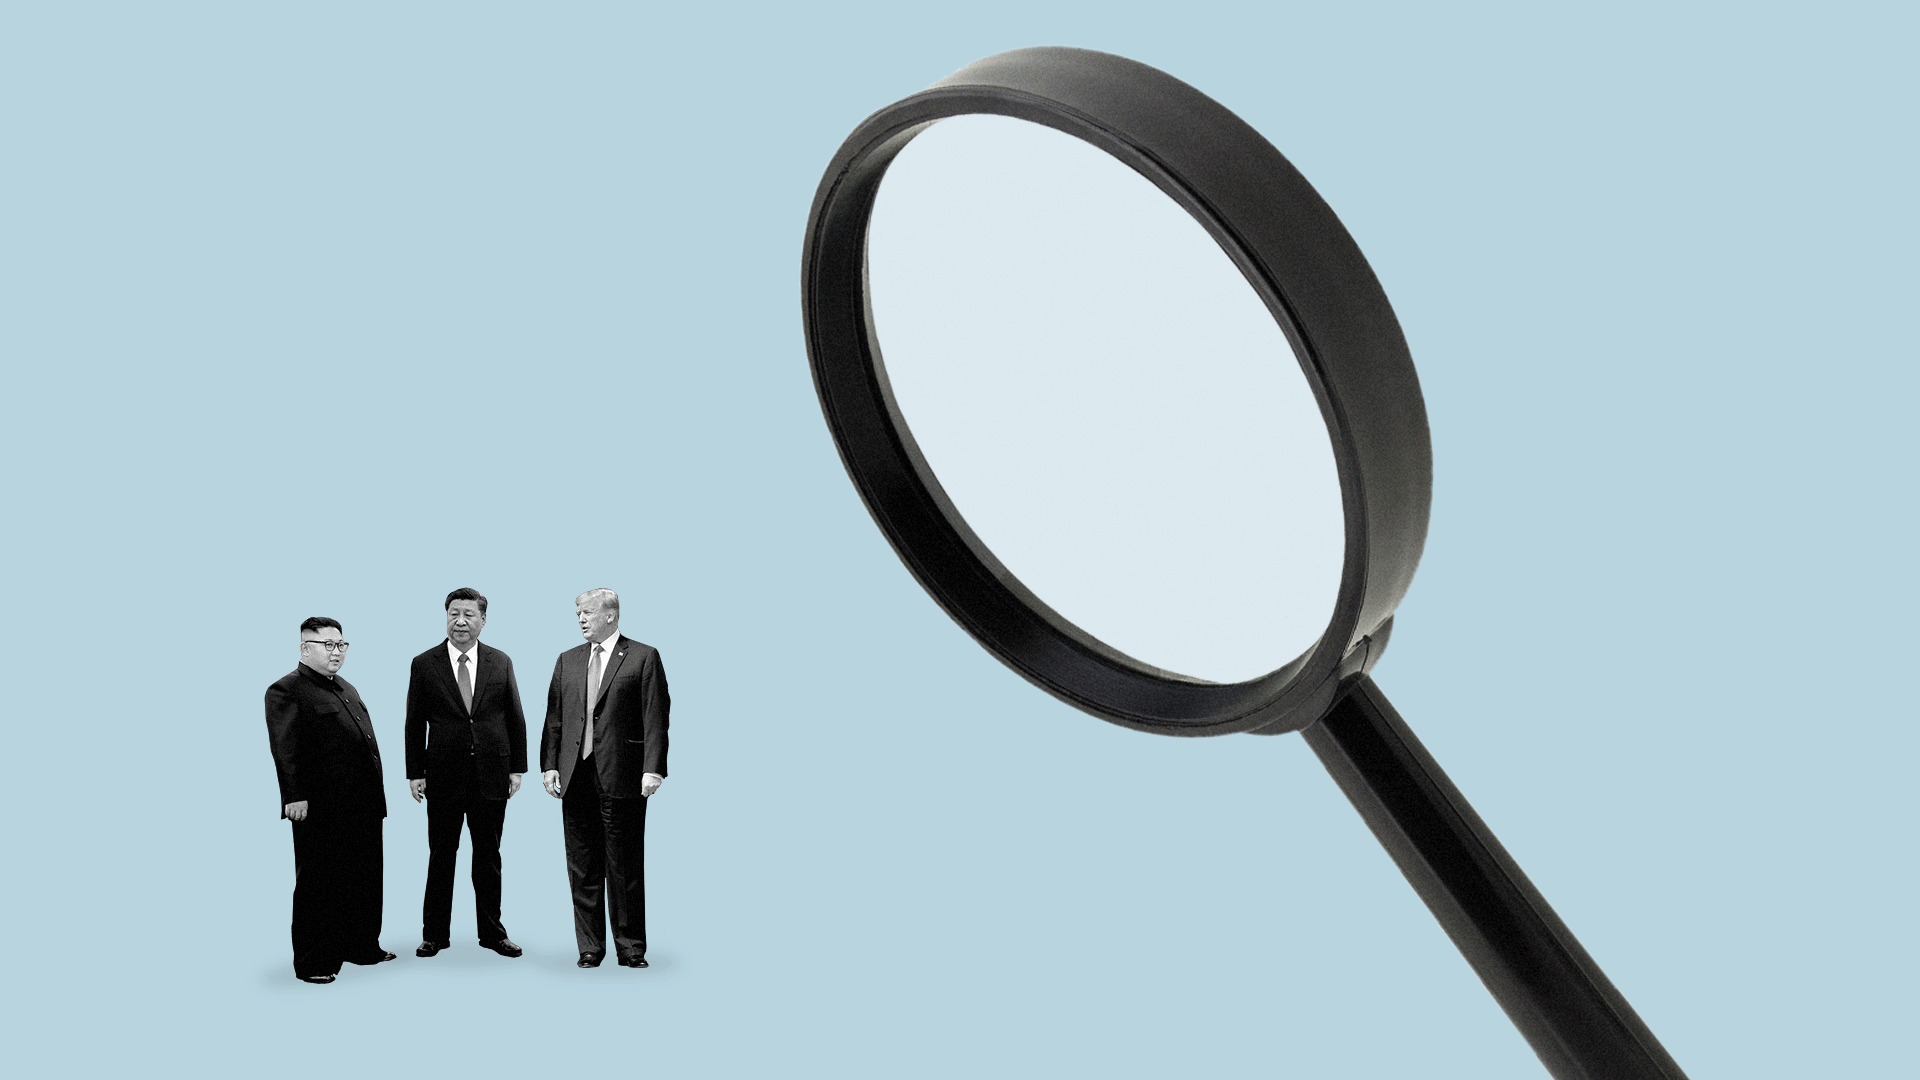 Illustration of Xi Jinping, Donald Trump, and Kim Jong-un being examined by a large magnifying glass.